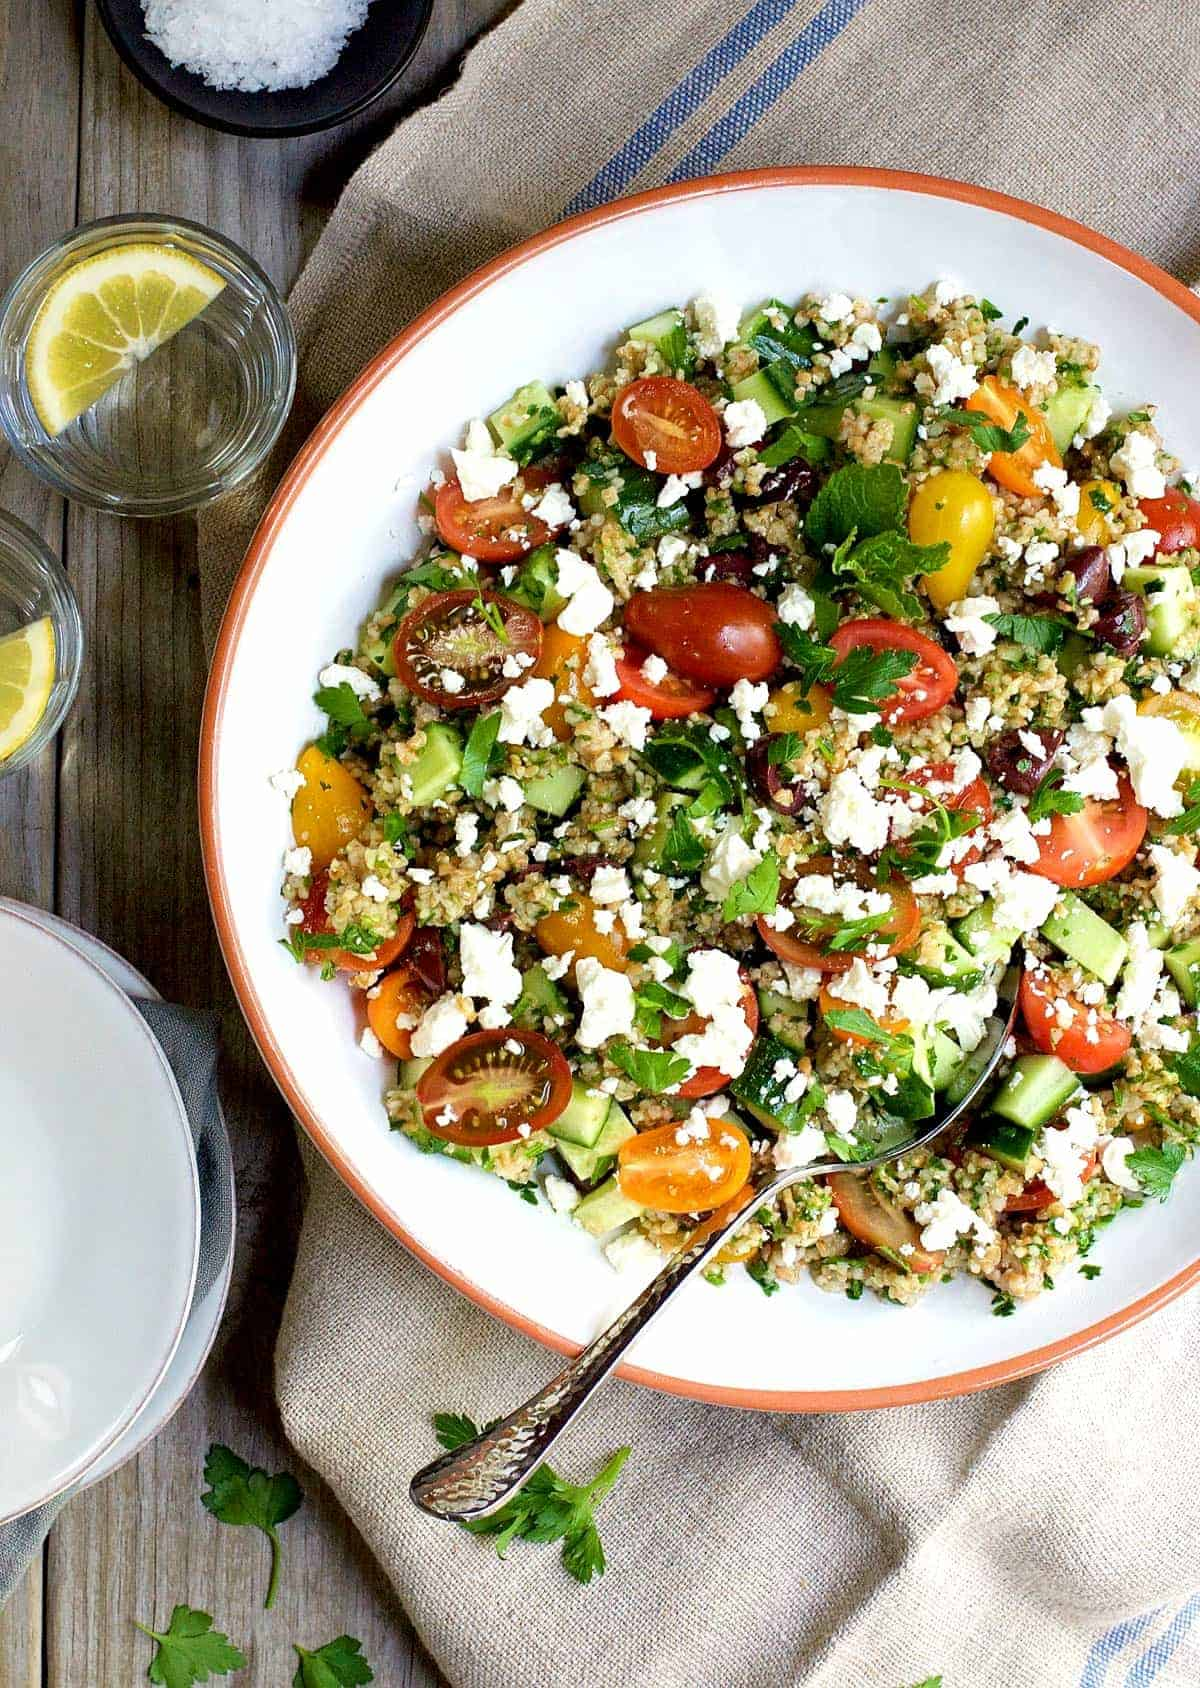 Tabouli salad is a classic Levantine dish (also spelled tabbouleh and tabouleh), a vegetarian salad that is loaded with flavor and texture. From crisp cucumber, sweet tomatoes, briny olives and bright parsley, every bite is a little different. Bulgur wheat makes the salad hearty enough to make it a main dish and I love to add salty creamy feta to make the salad even better.